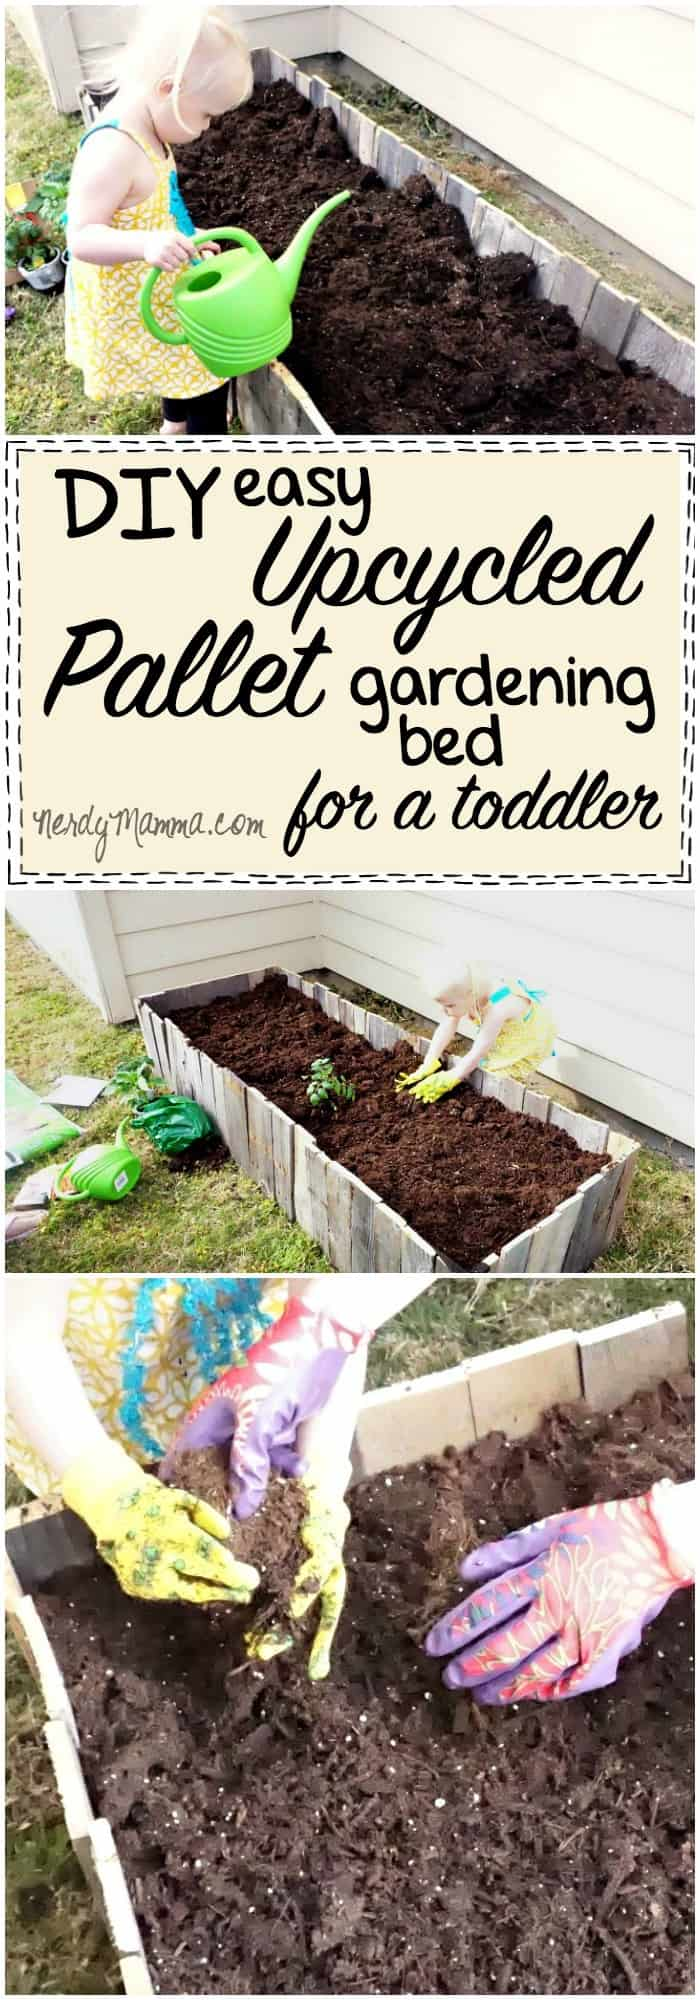 I love this idea for an easy upcycled pallet gardening bed. My kiddo would think this is just too cool!